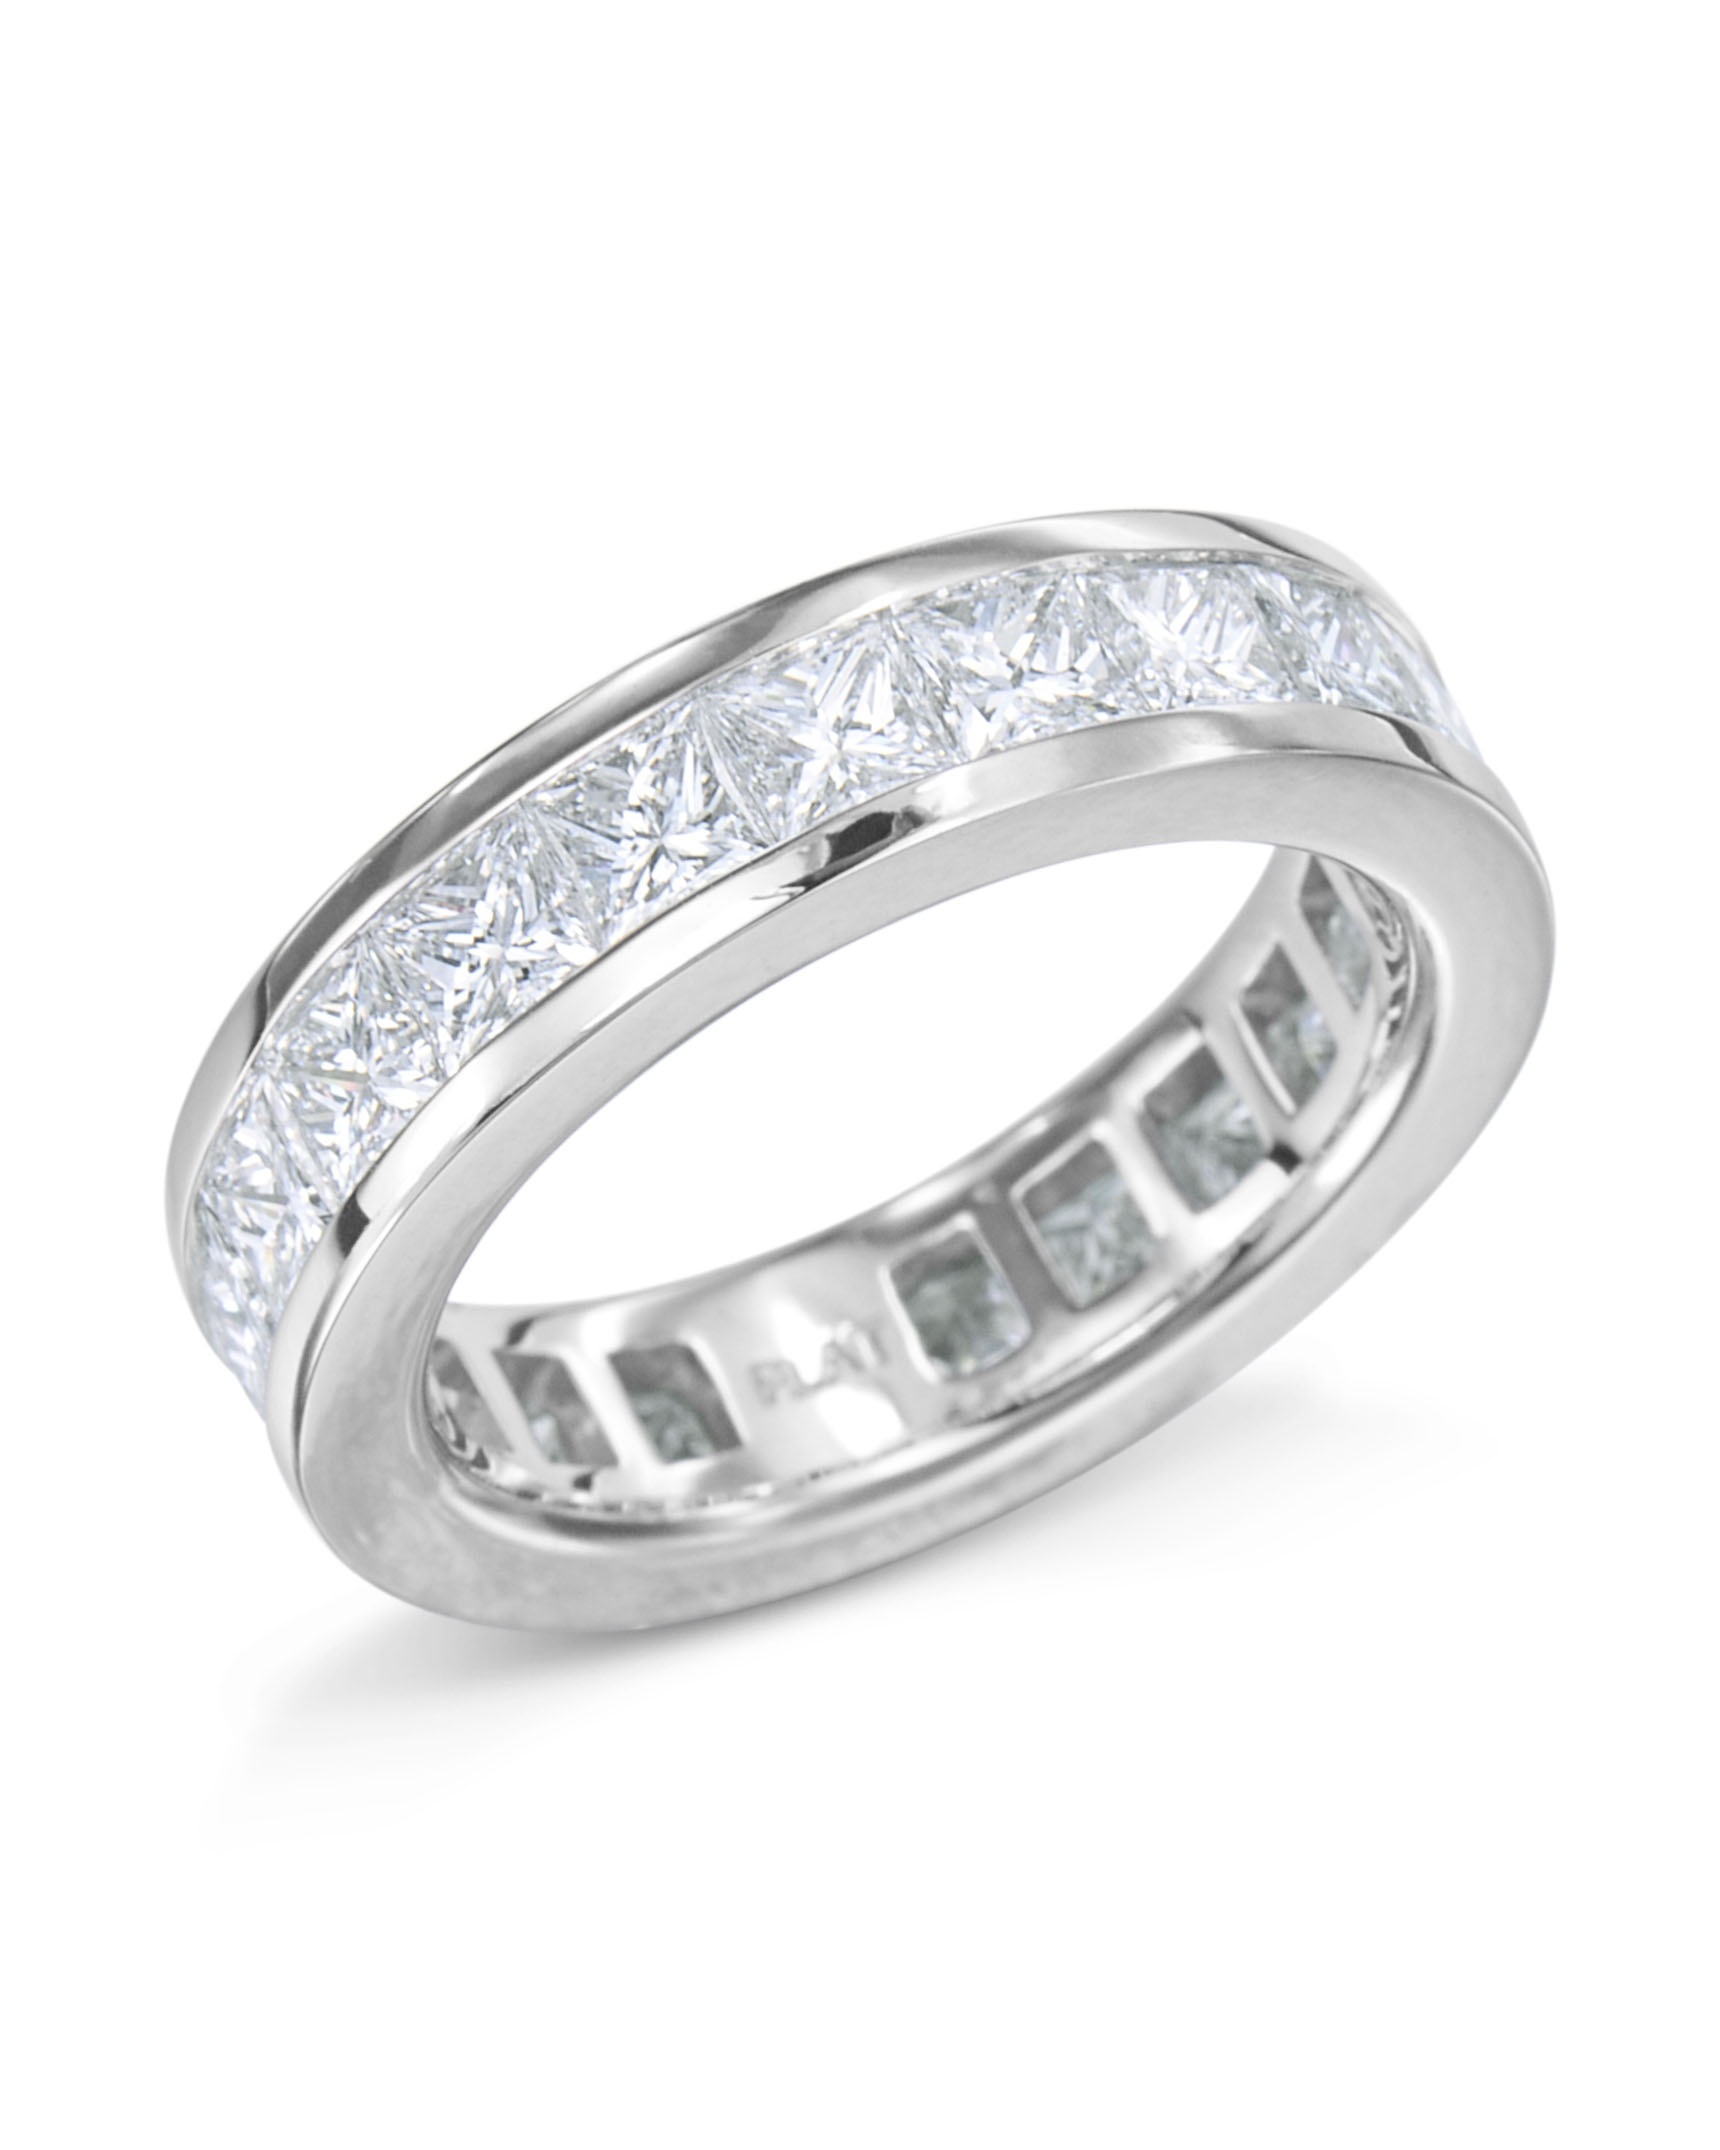 ring bands eternity half engagement sleek band gs vashi diamond com main